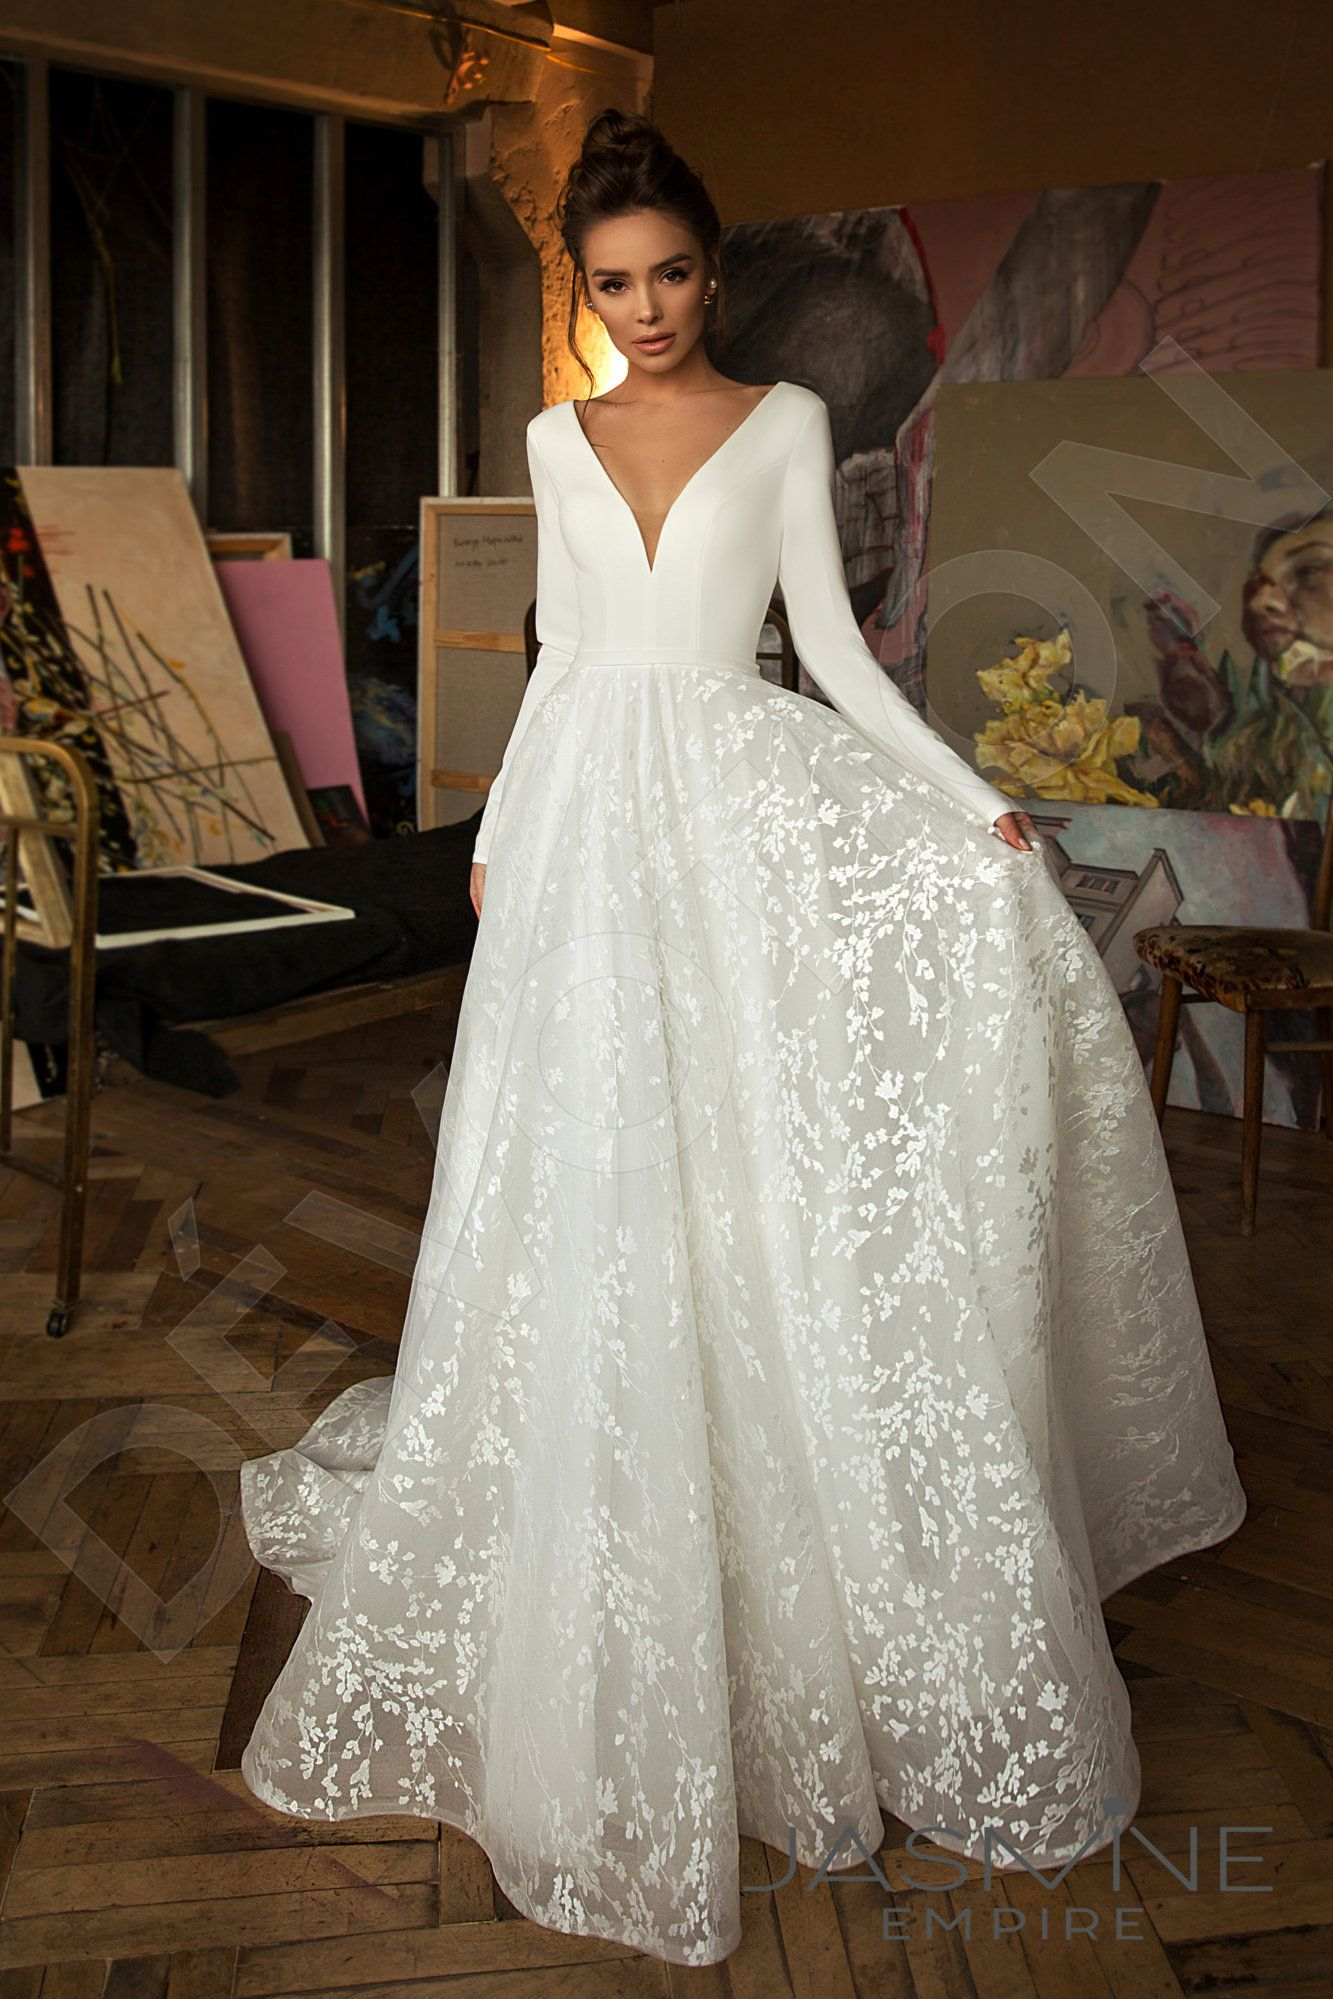 Individual size A-line silhouette Bonna wedding dress. Elegant style by DevotionDresses